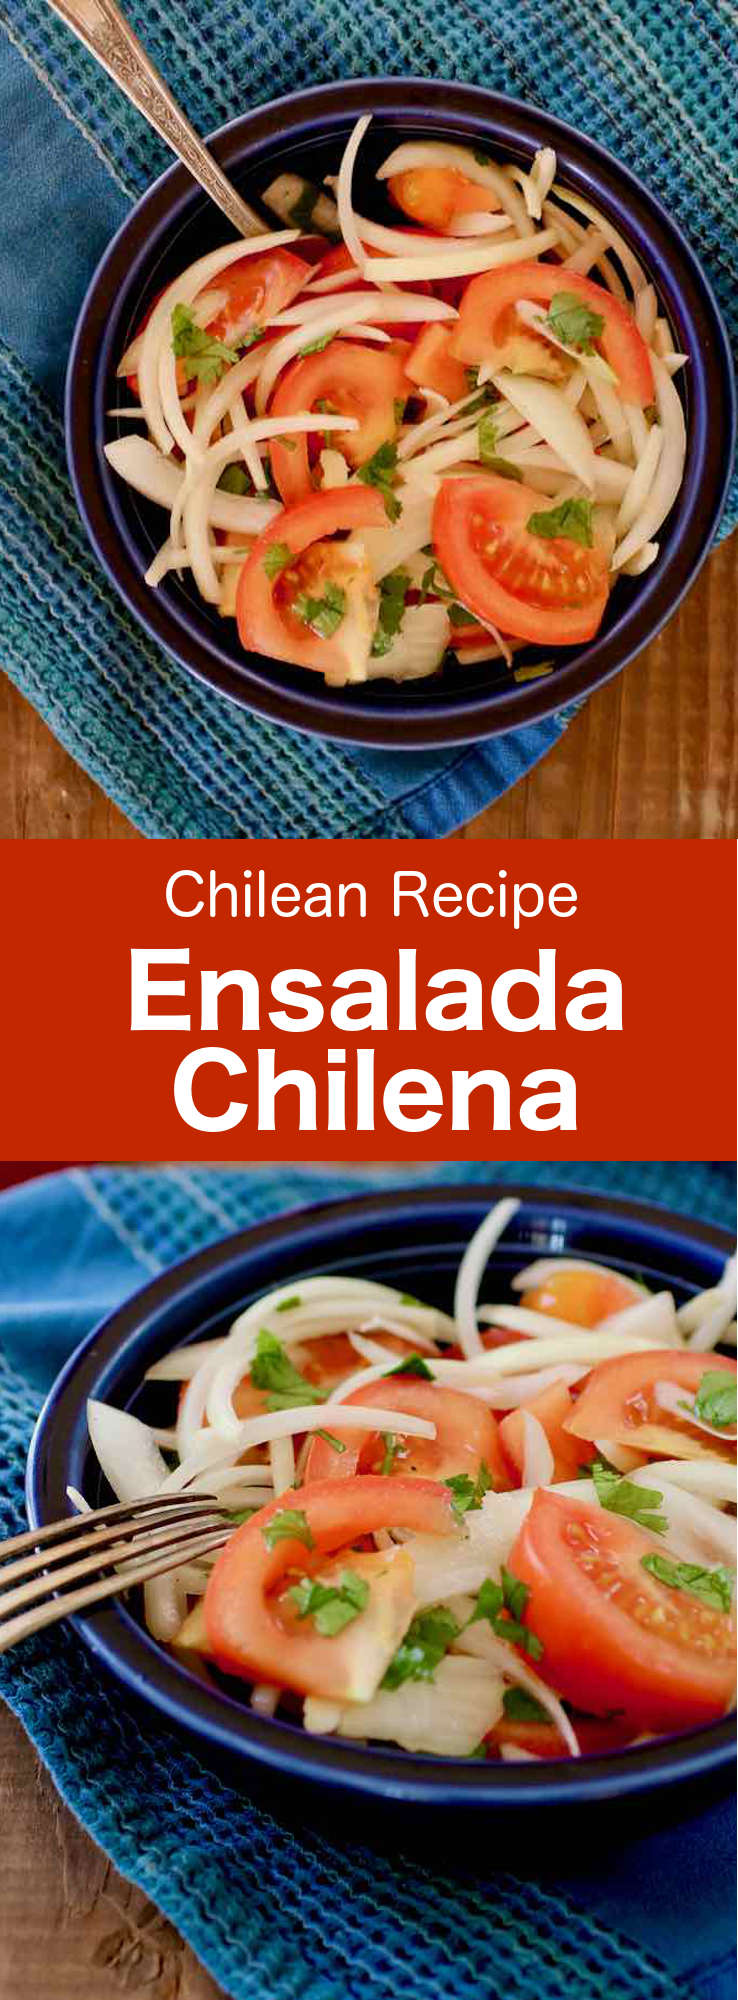 Ensalada chilena is a traditional Chilean salad made with very thinly sliced onion, tomato wedges, and cilantro, often served on grilled meats or humitas. #Chile #ChileanCuisine #ChileanRecipe #ChileanFood #WorldCuisine #196flavors